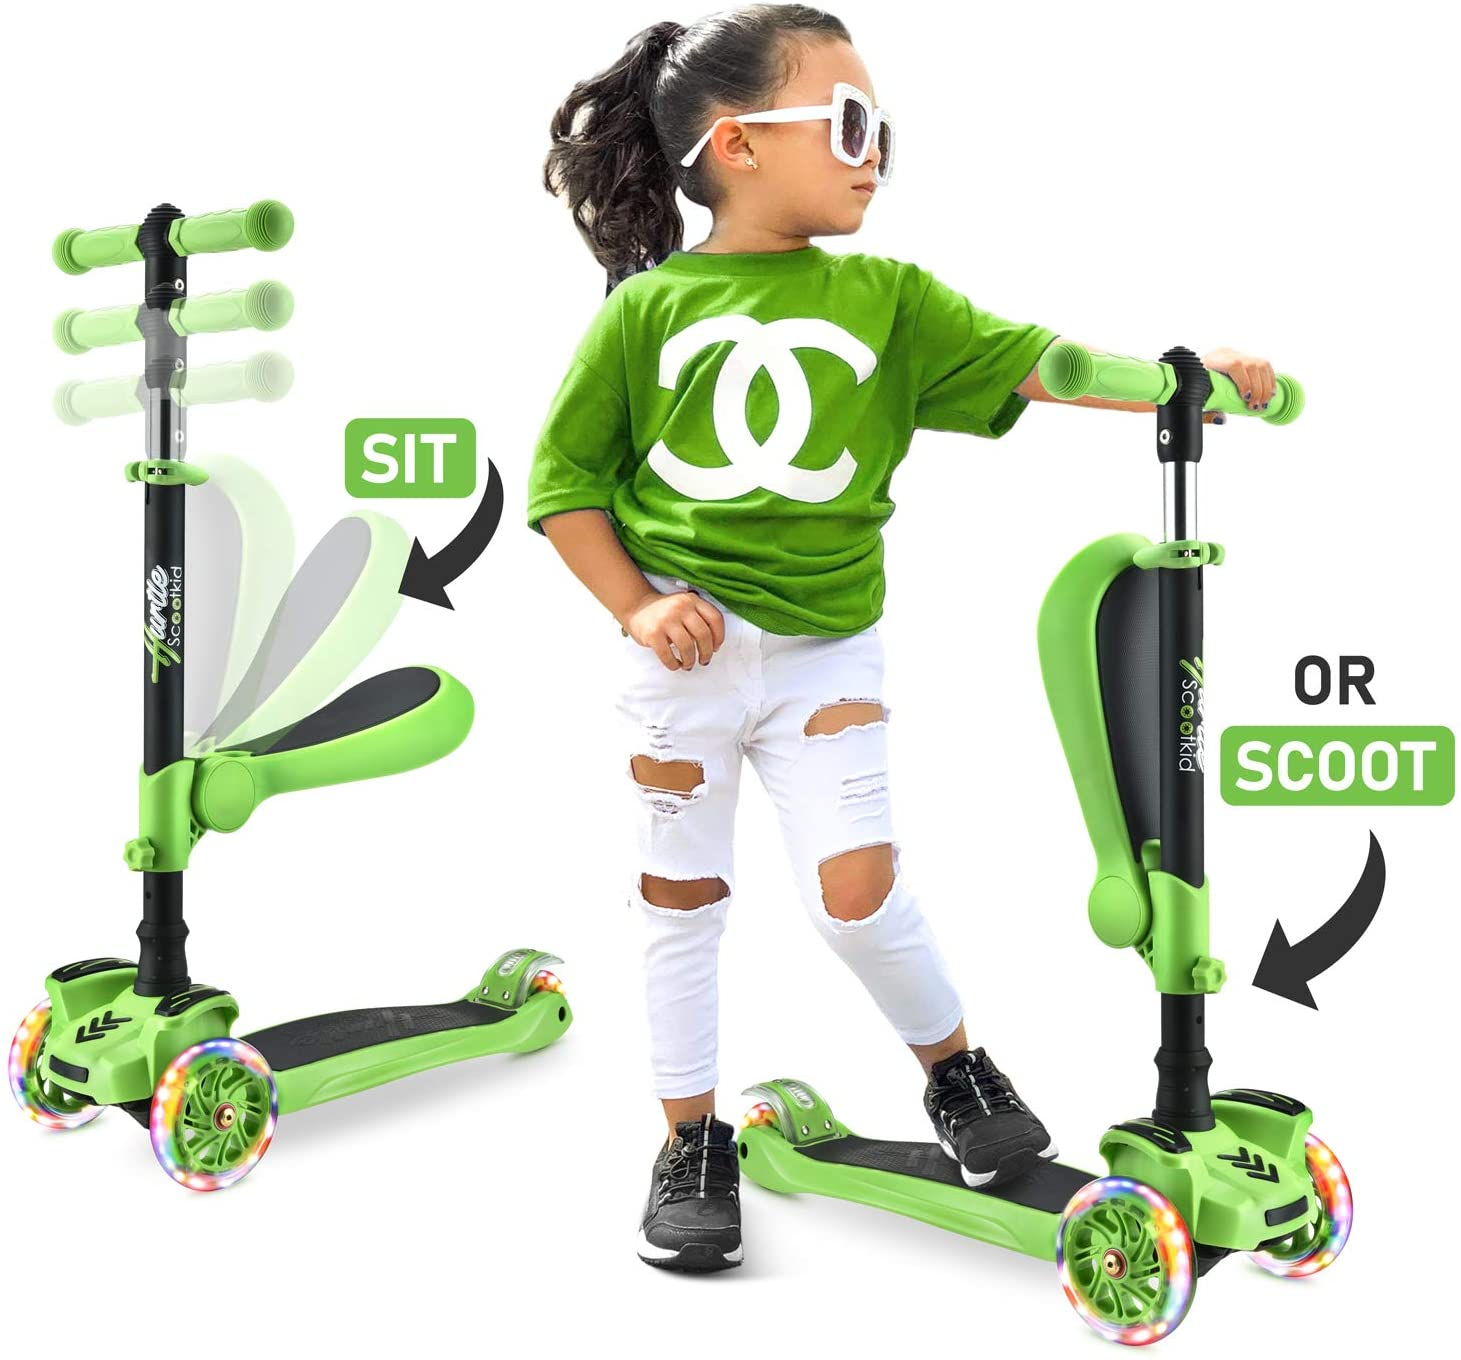 Sit or Stand Ride with Brake for Boys and Girls Ages 2-10 Years Old SISIGAD 3-Wheeled Scooter for Kids Toddler Scooter with 3 Wheel LED Lights Adjustable Lean-to-Steer Handlebar Foldable Seat